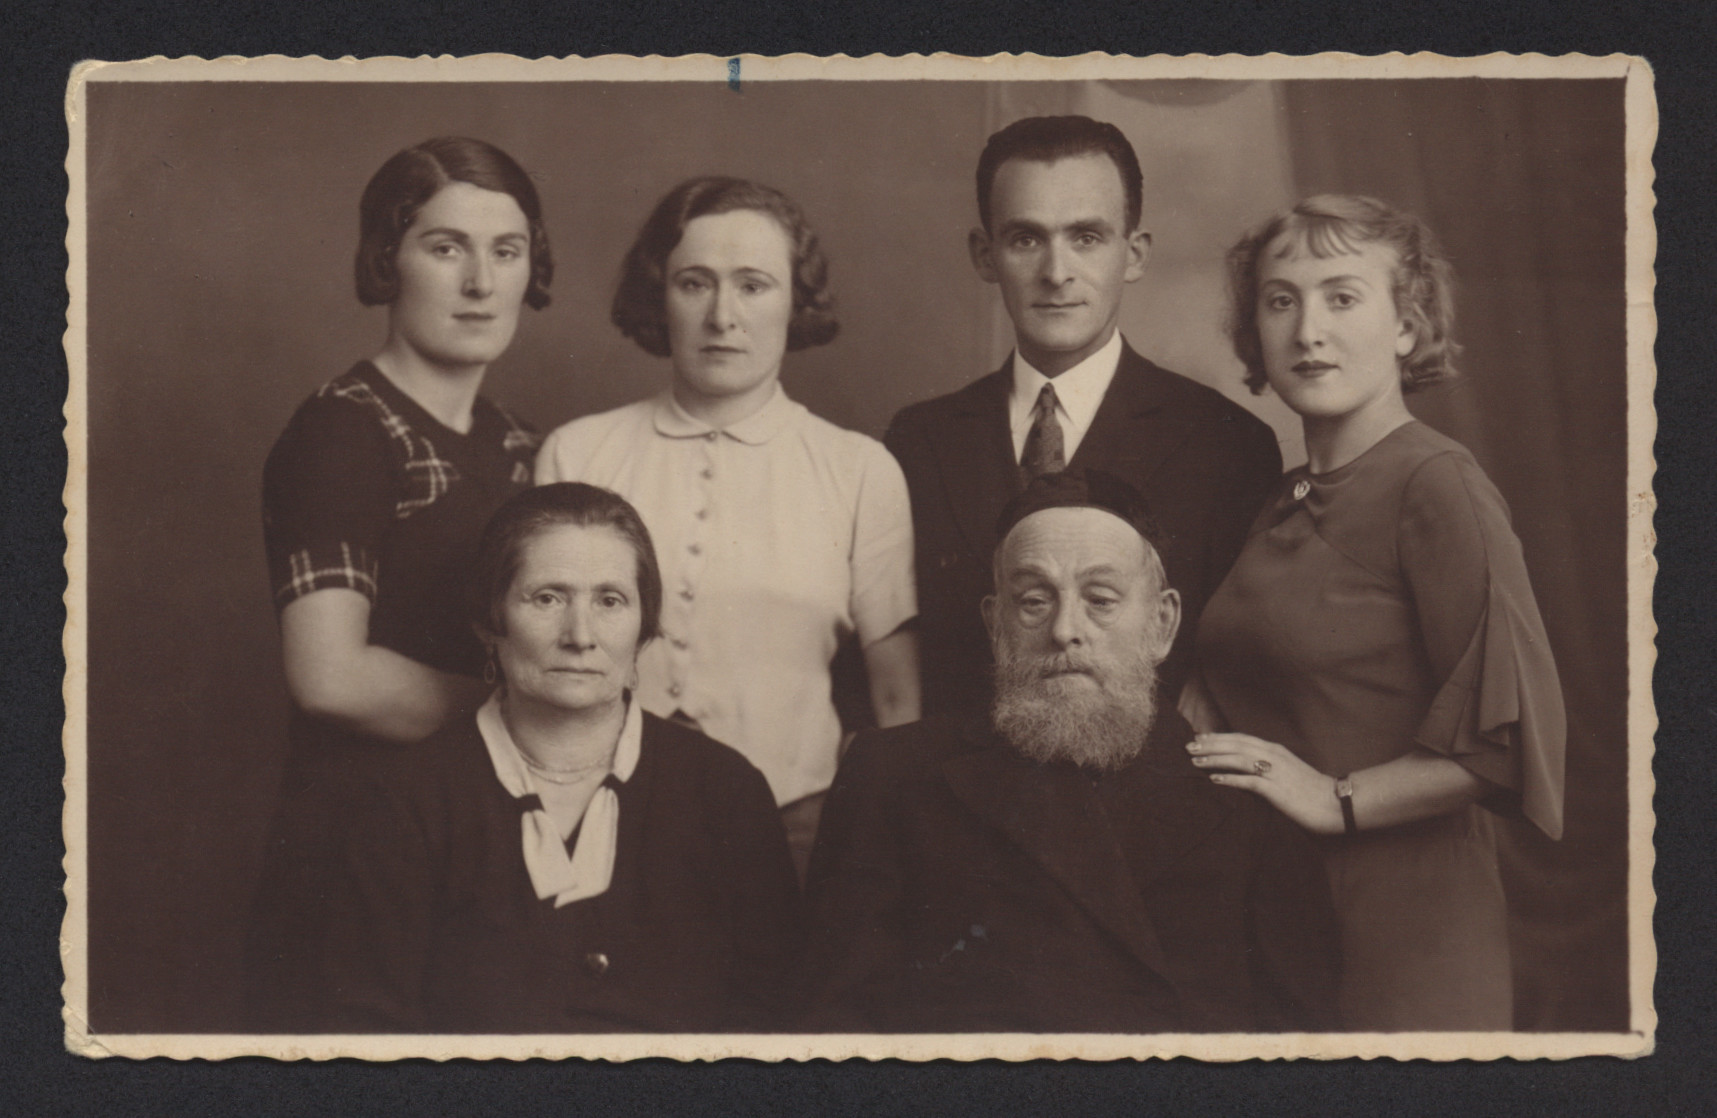 Prewar photograph of the Cwajgenbaum family in Lodz.   Pictured sitting are Gittle and Anton Cwajgenbaum.  Stanting are their children Gitia, Sara, Max and Renee.